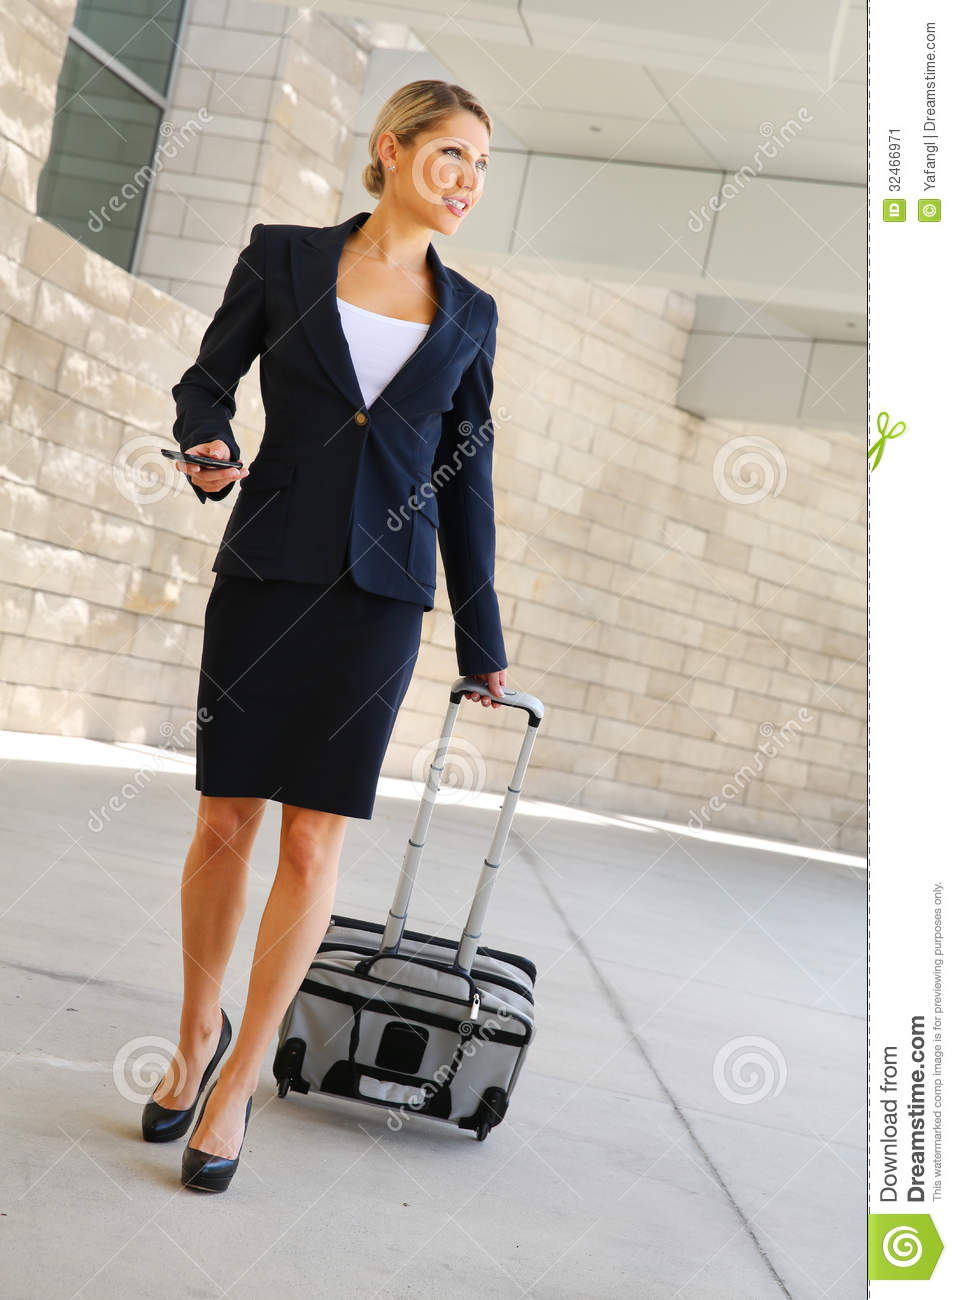 Watch further Stock Image Business Woman Business Trip Walking Wheel Bag Speak One Image32466971 further Is She Sick Aka Mixed And Really Married in addition On Living Alone likewise Royalty Free Stock Photos Slipping Tripping Falling Illustration Depicts Words Slips Trips Falls Women Doing Corresponding Actions Image34652378. on woman tripping